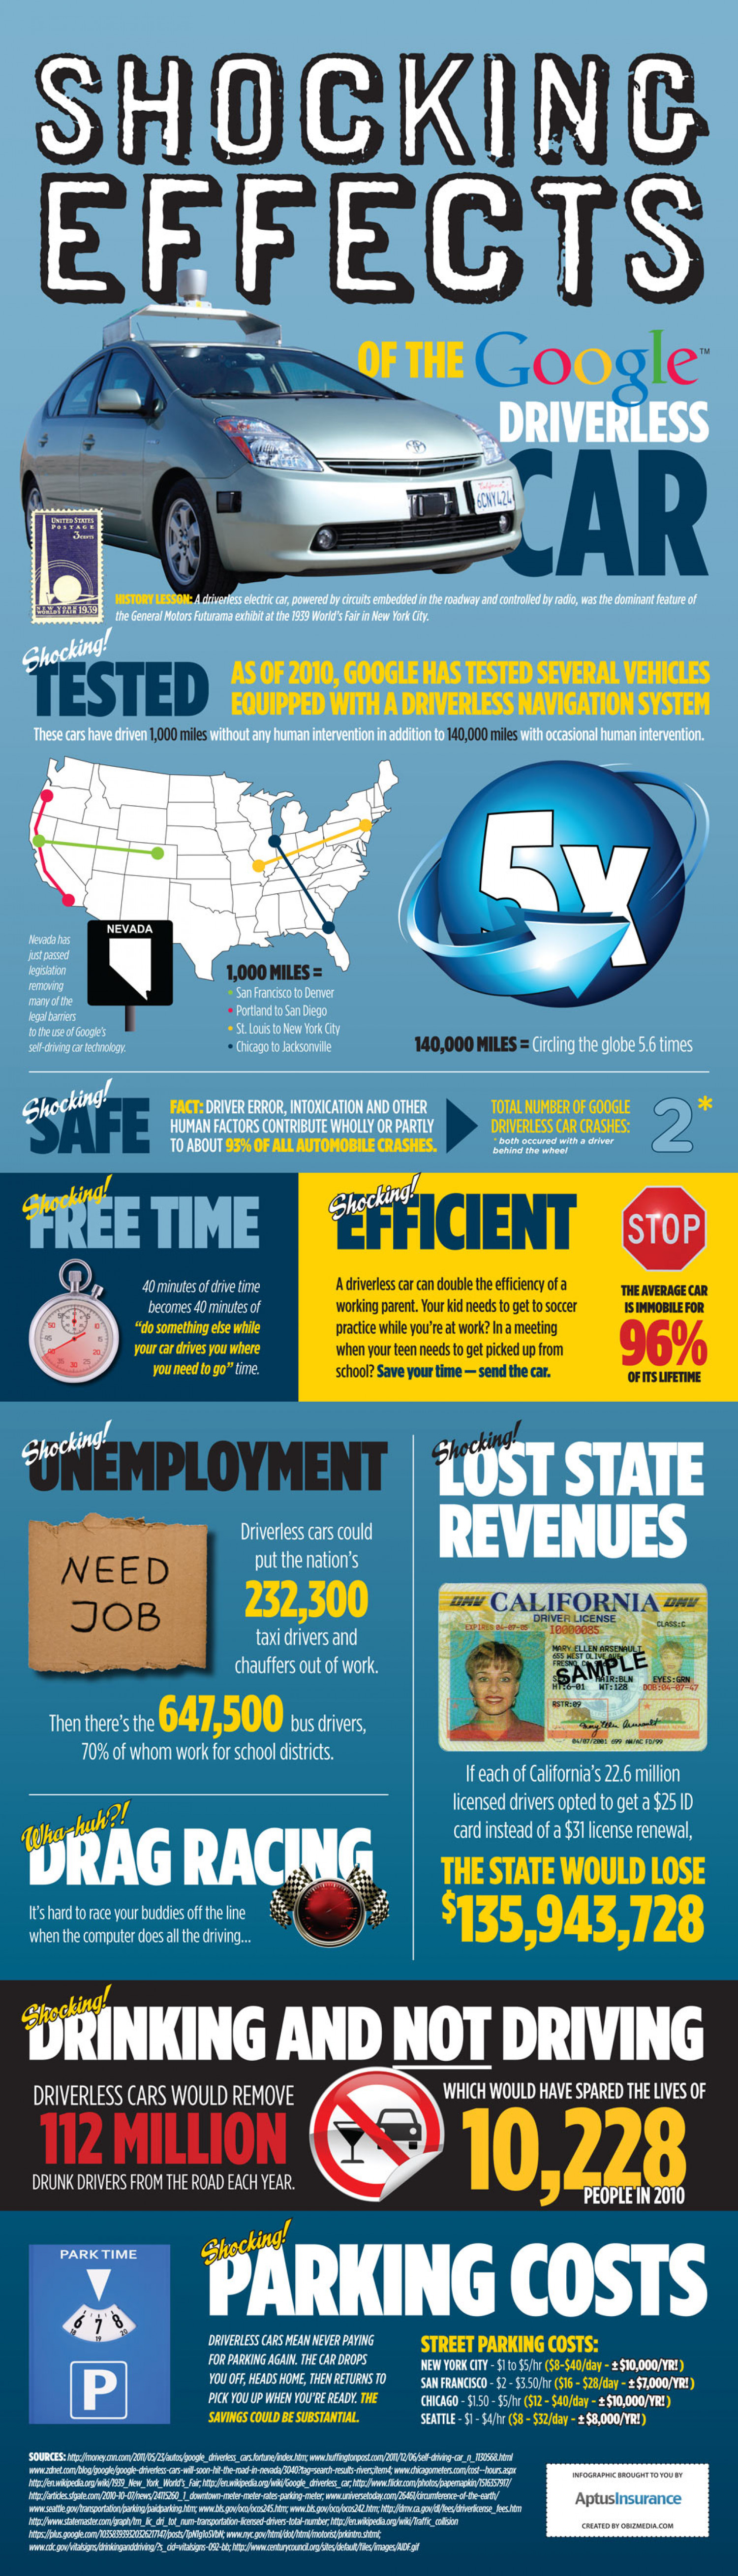 Shocking Effects of the Google Driverless Car Infographic